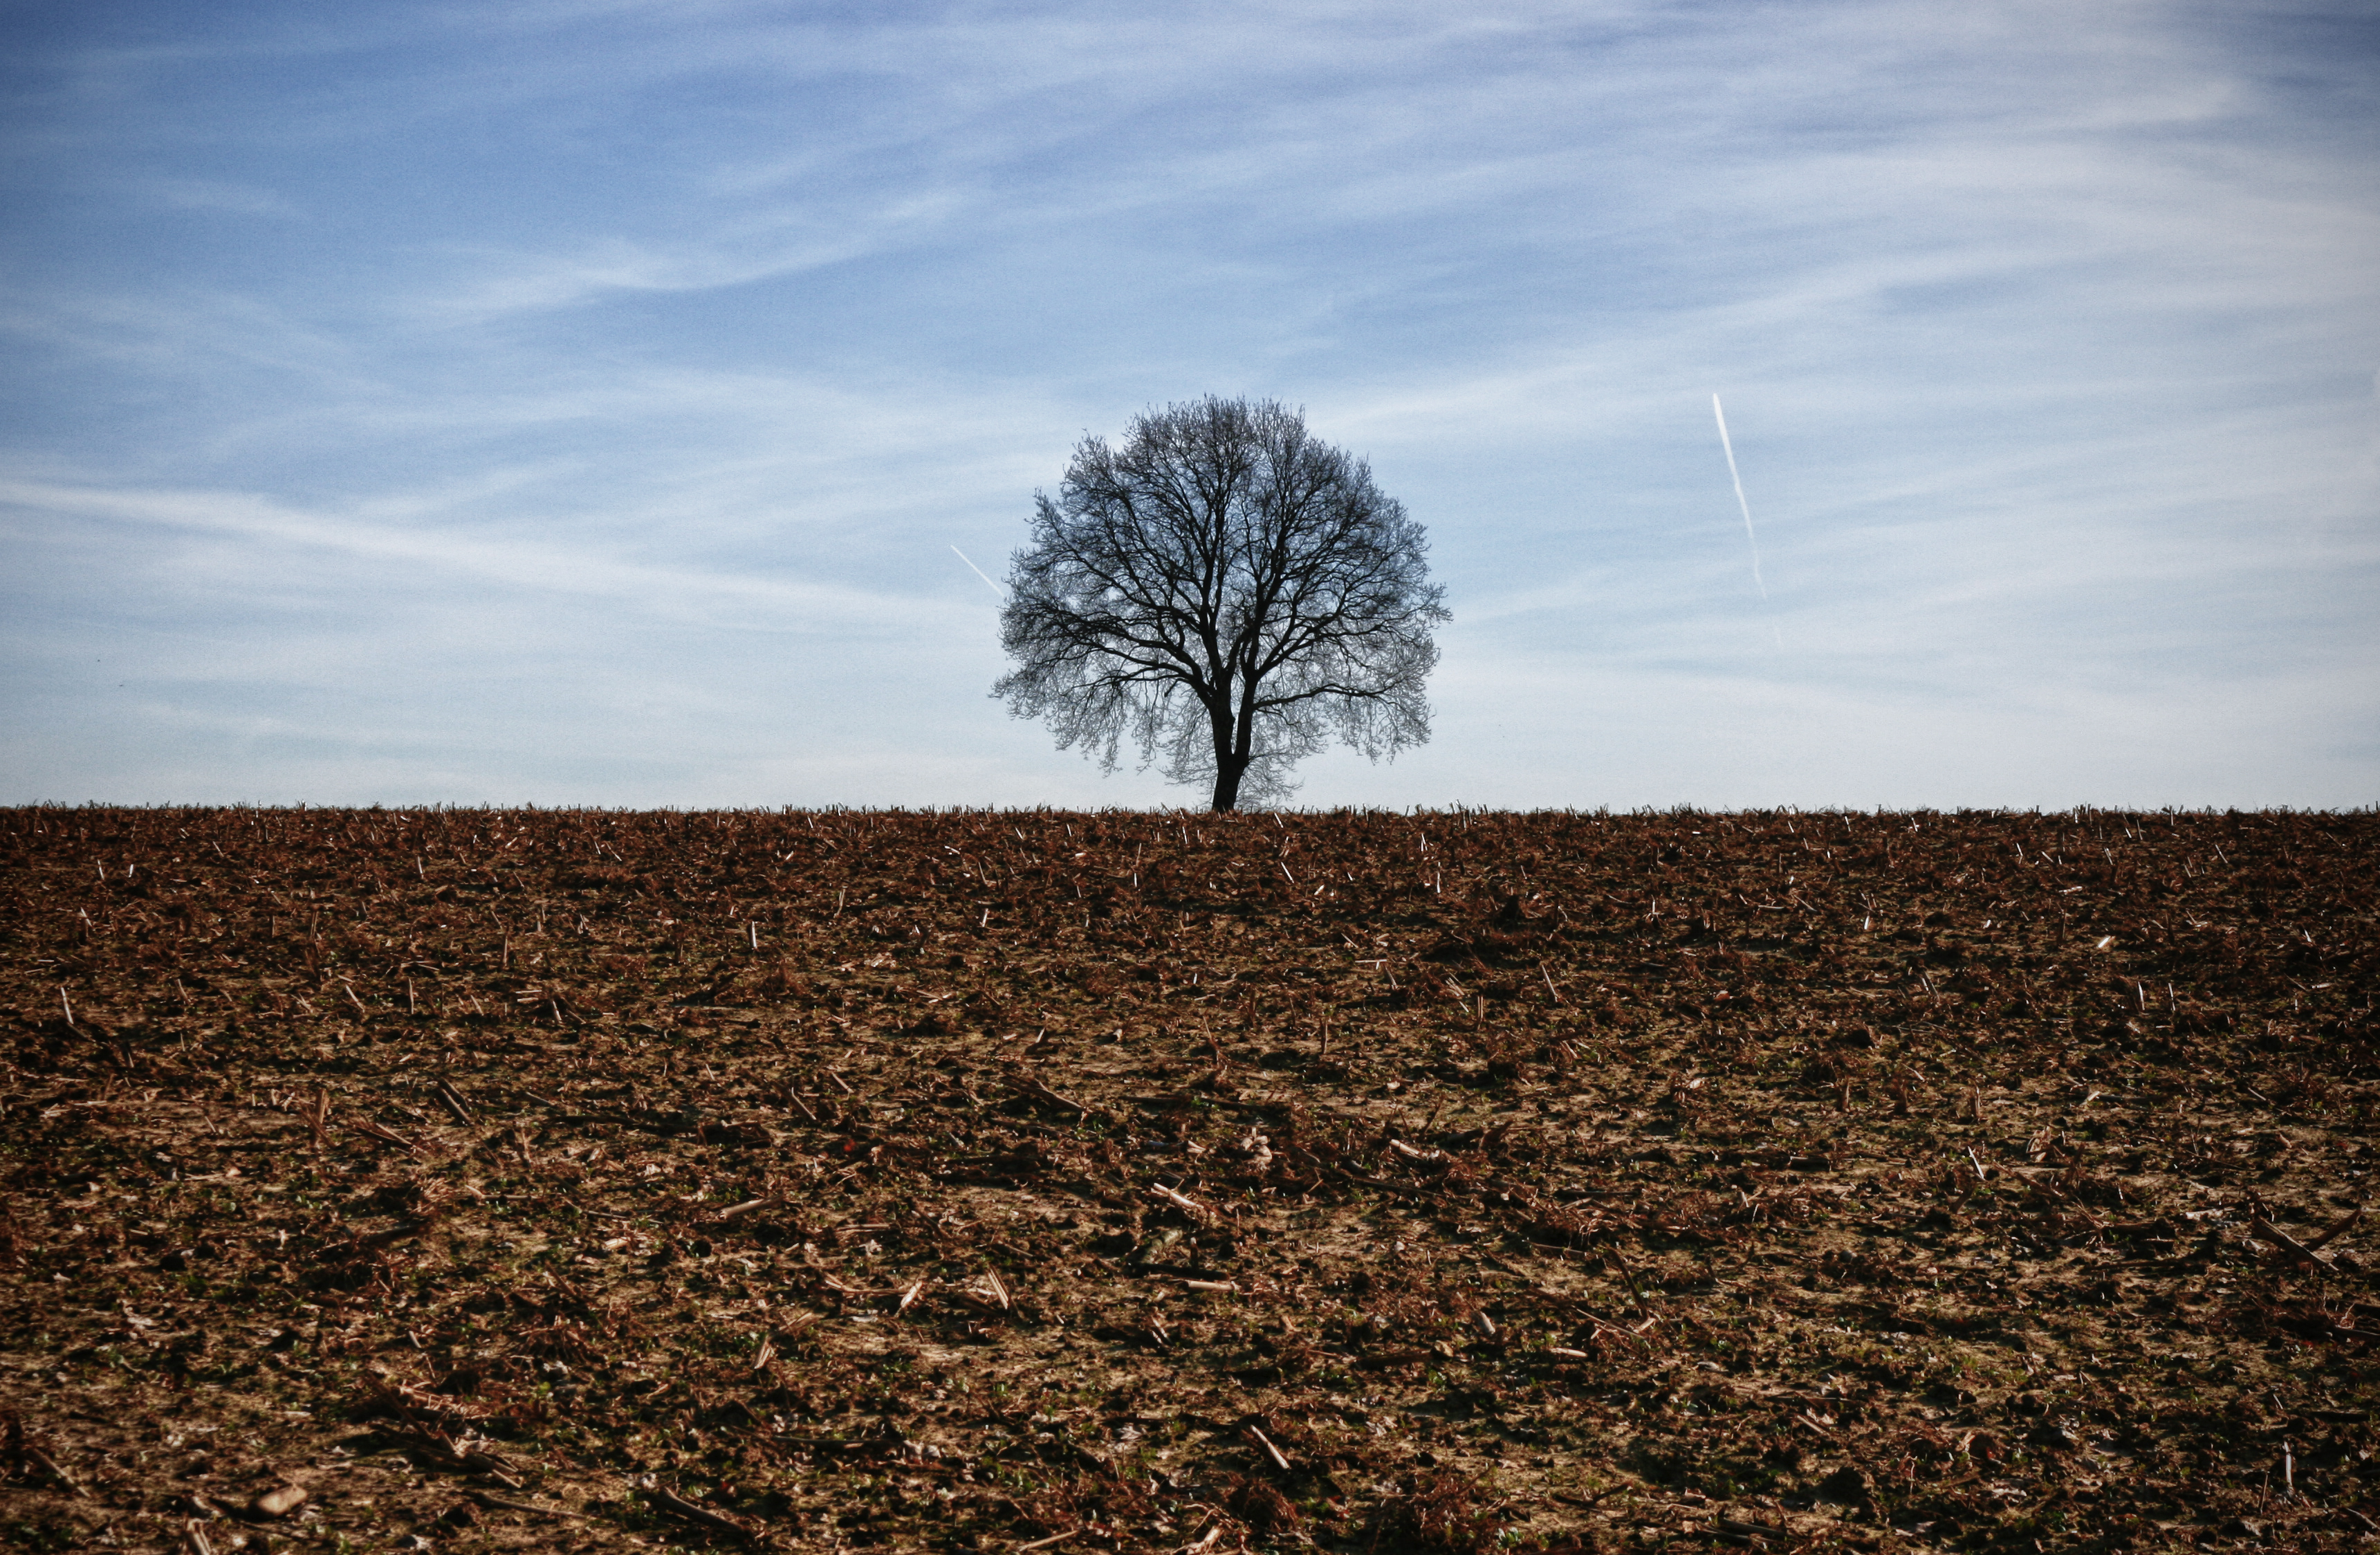 File:Lonely tree (5446264712).jpg - Wikimedia Commons